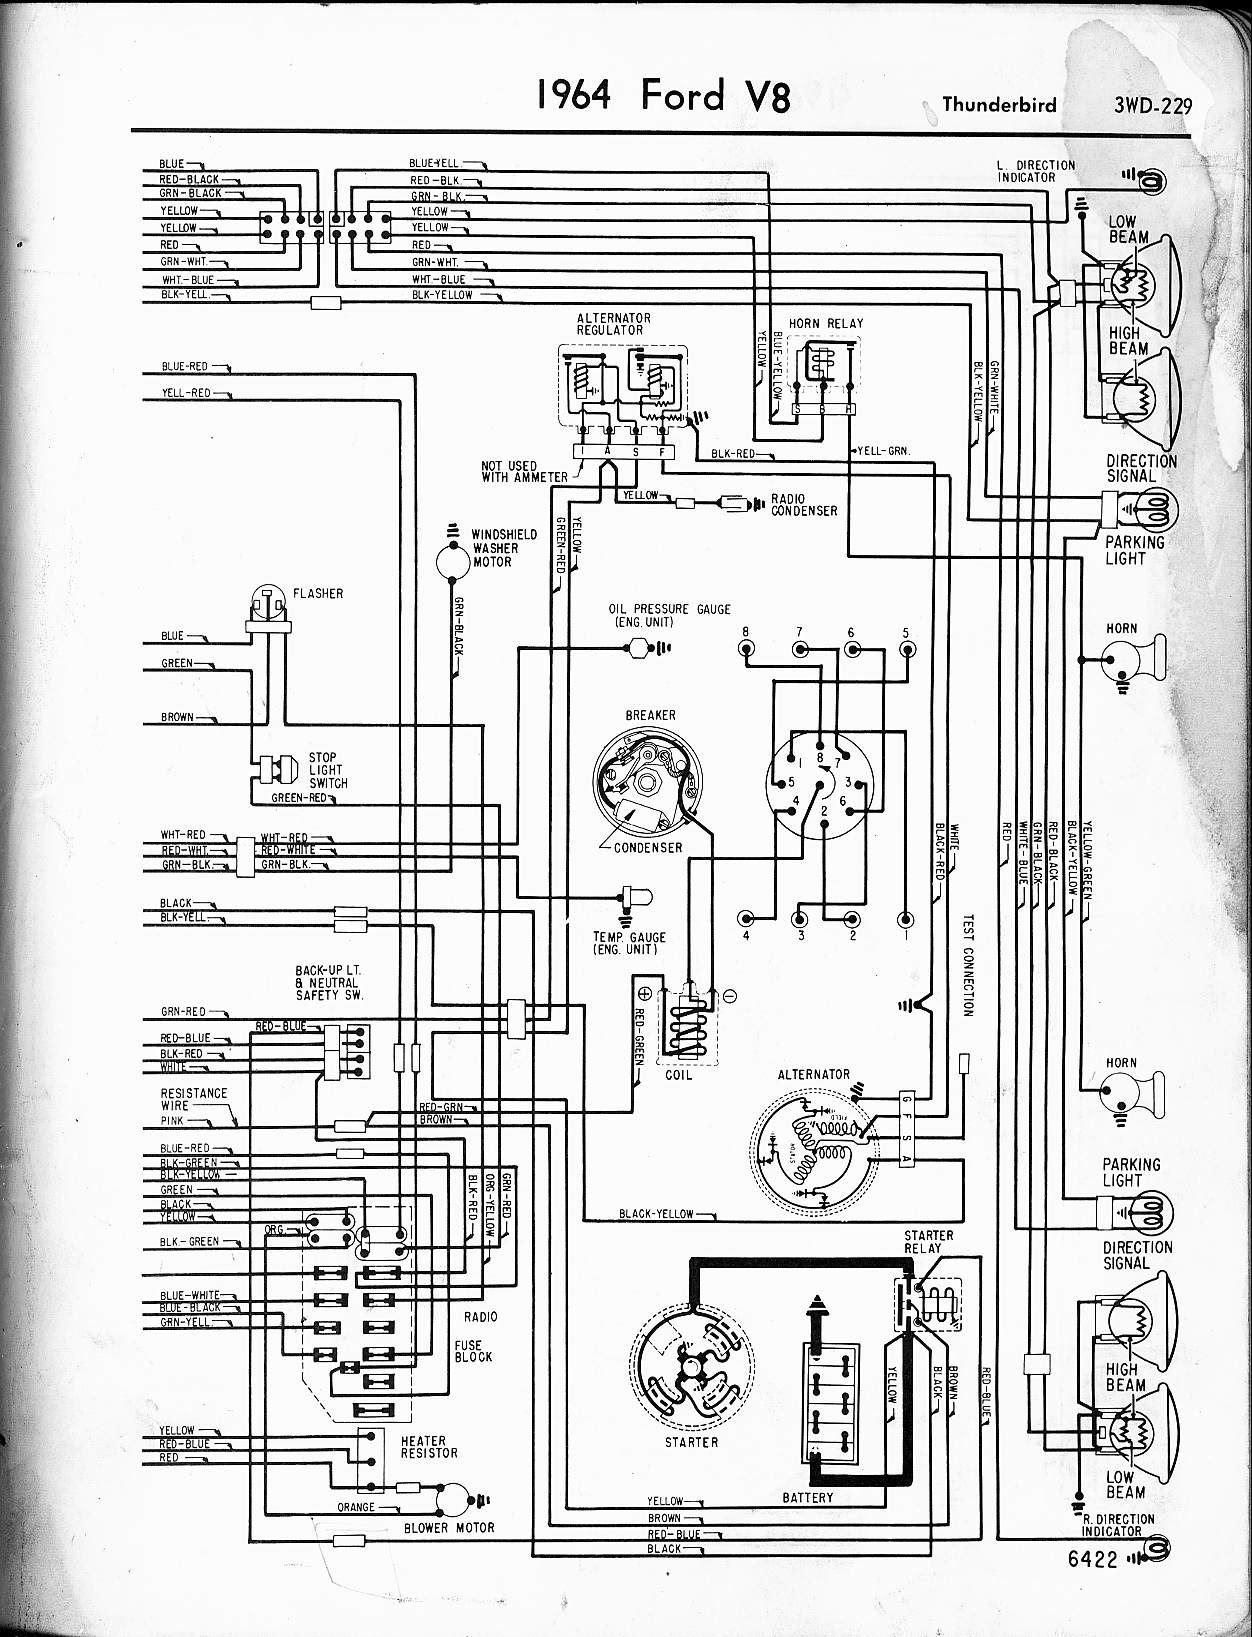 Wiring Diagram For 1963 Ford Thunderbird Convertible Top Wiring Diagram Aperture A Aperture A Zaafran It